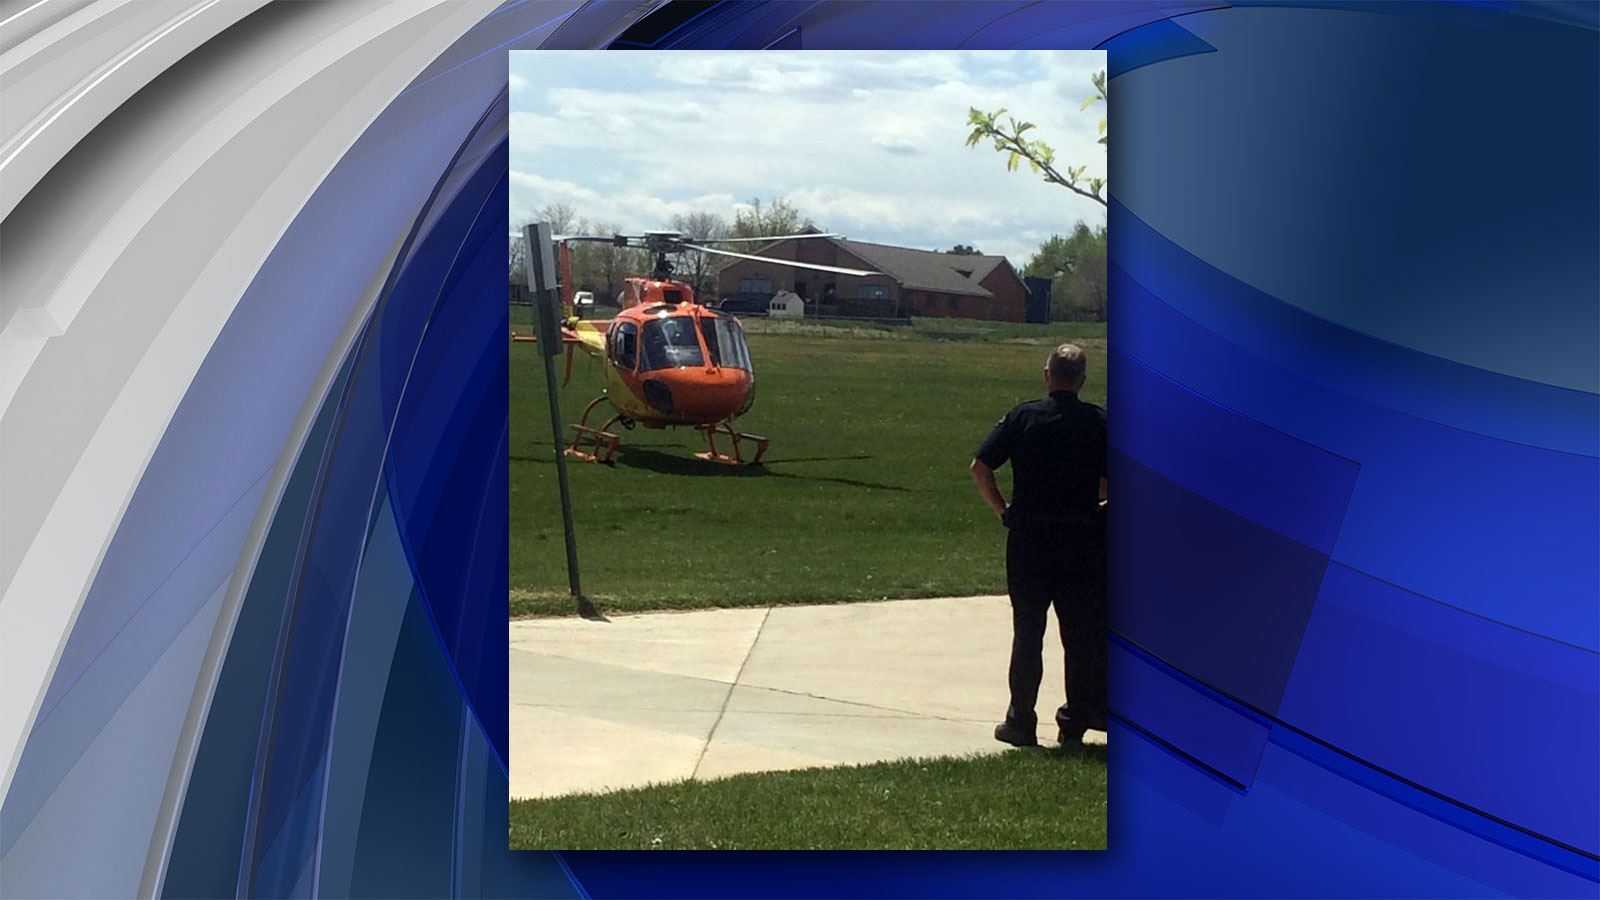 The student being airlifted to the hospital (credit: North Metro Fire Department)